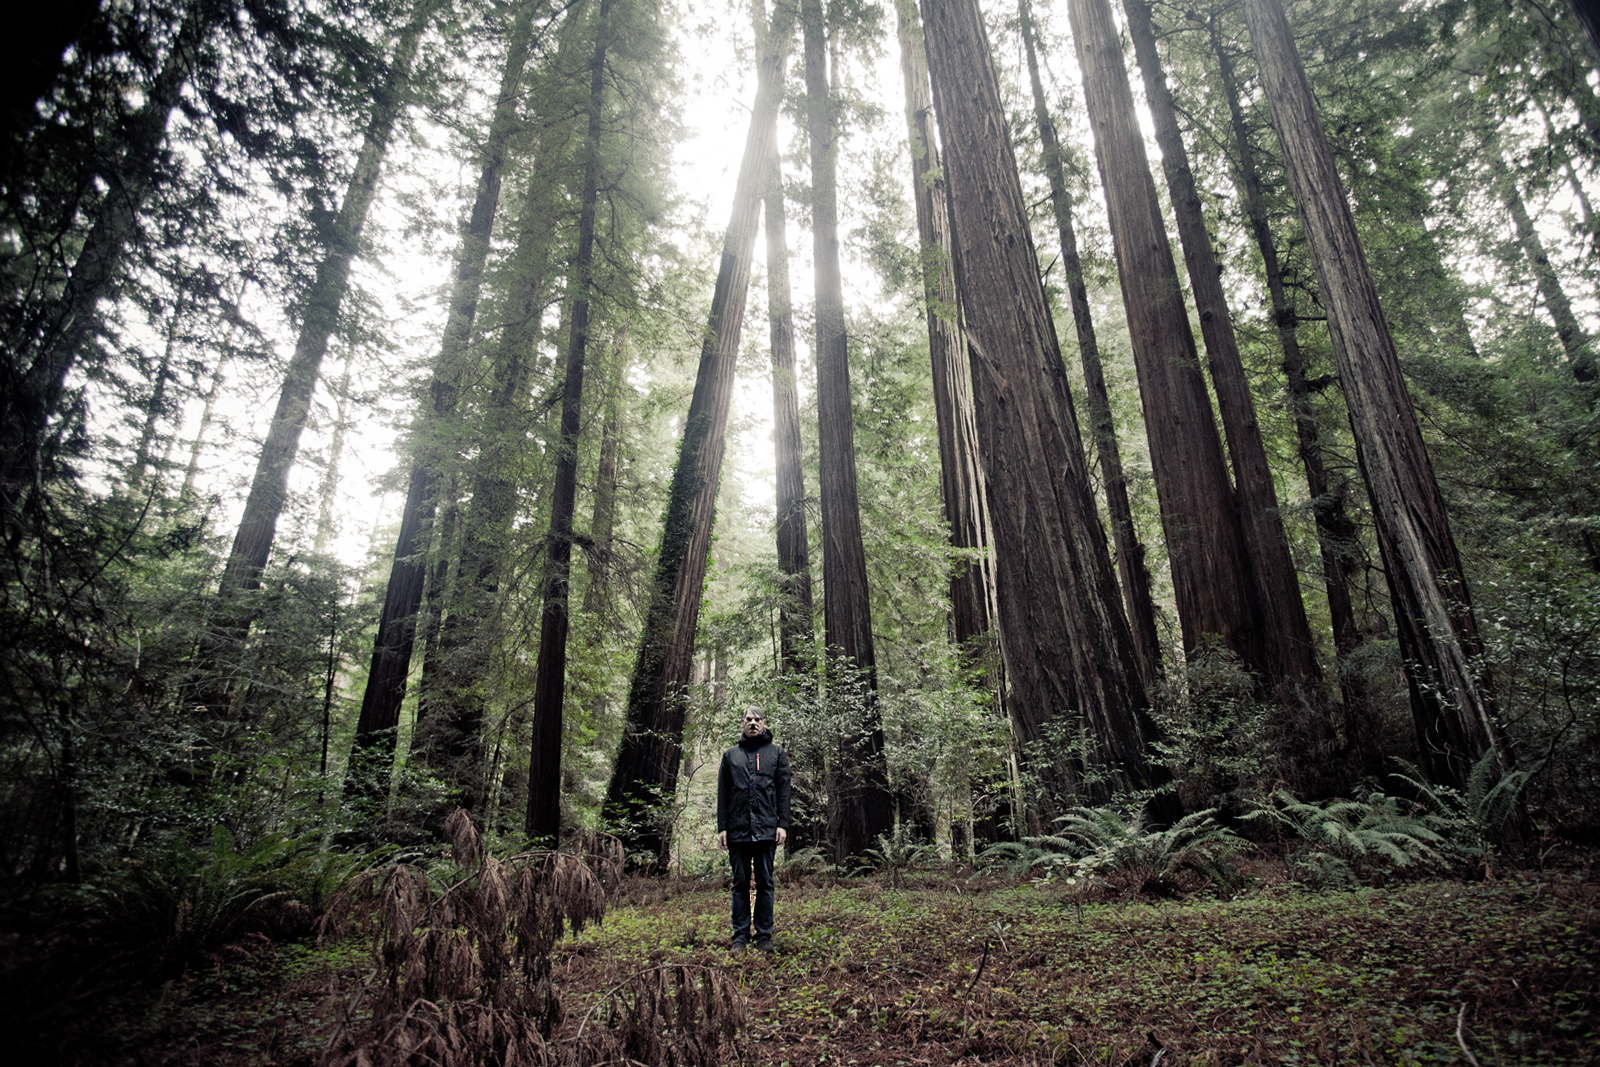 Hitler visiting the Redwoods, California